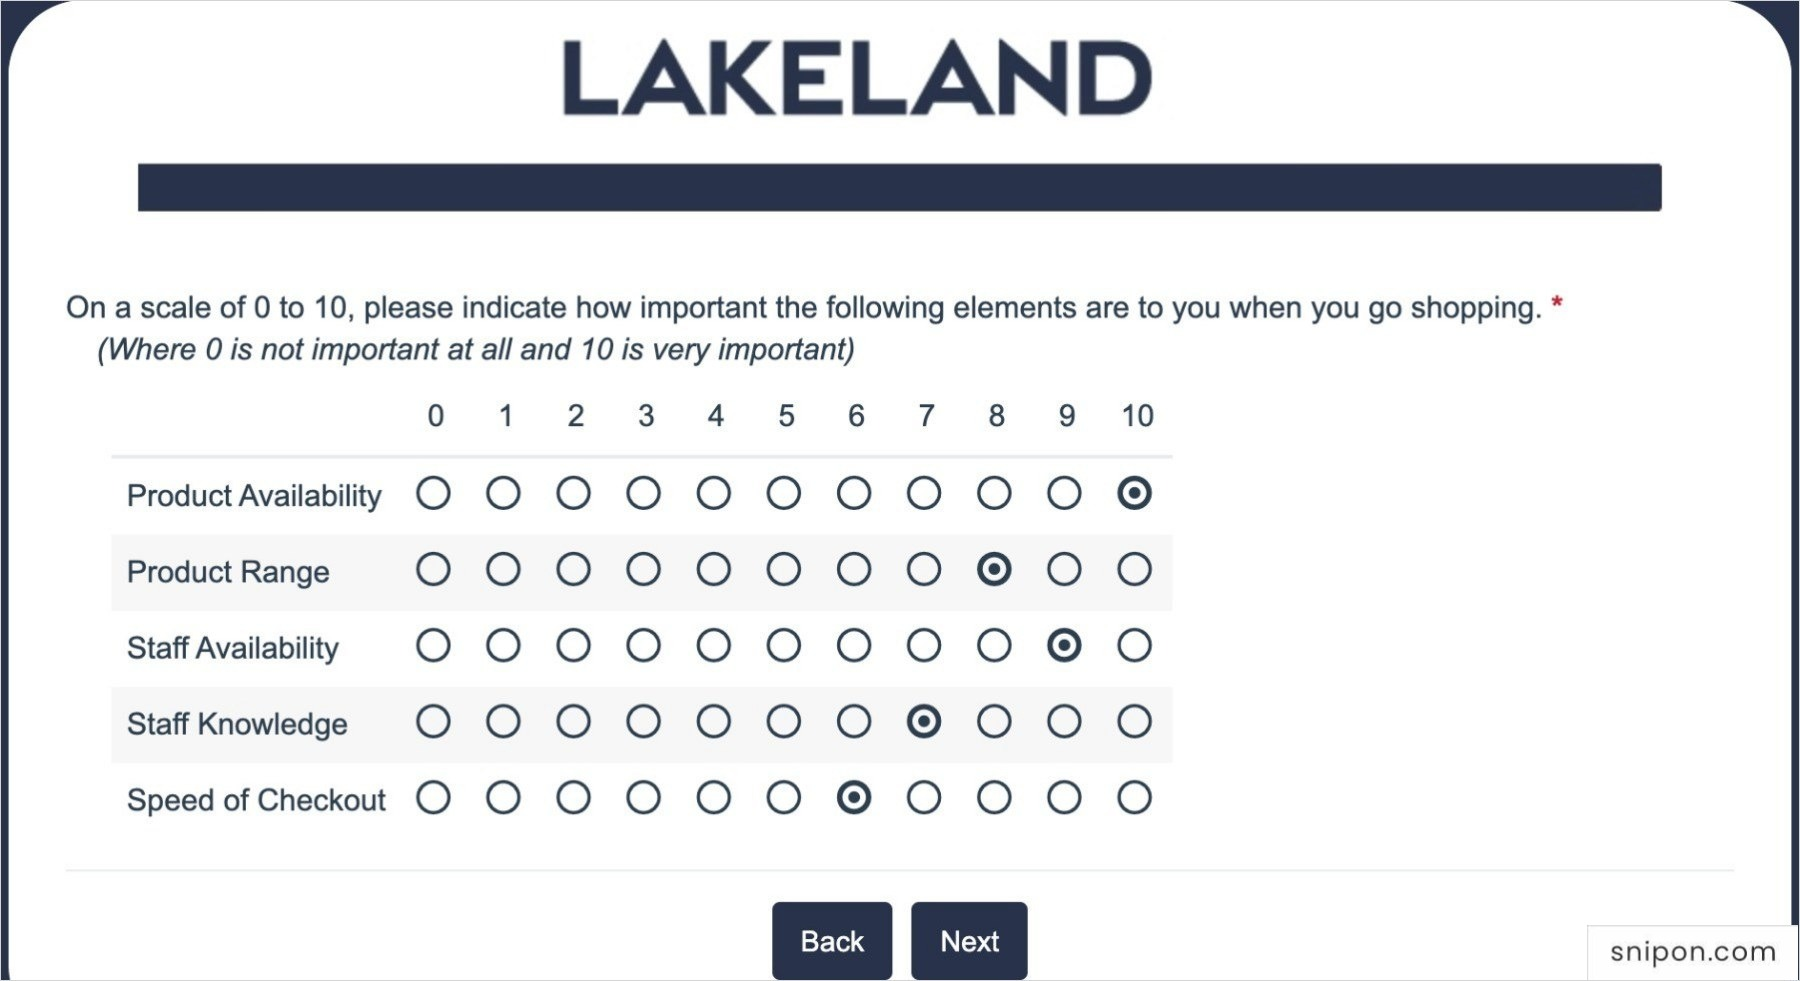 Rate Importance of Some Areas - Lakeland Survey